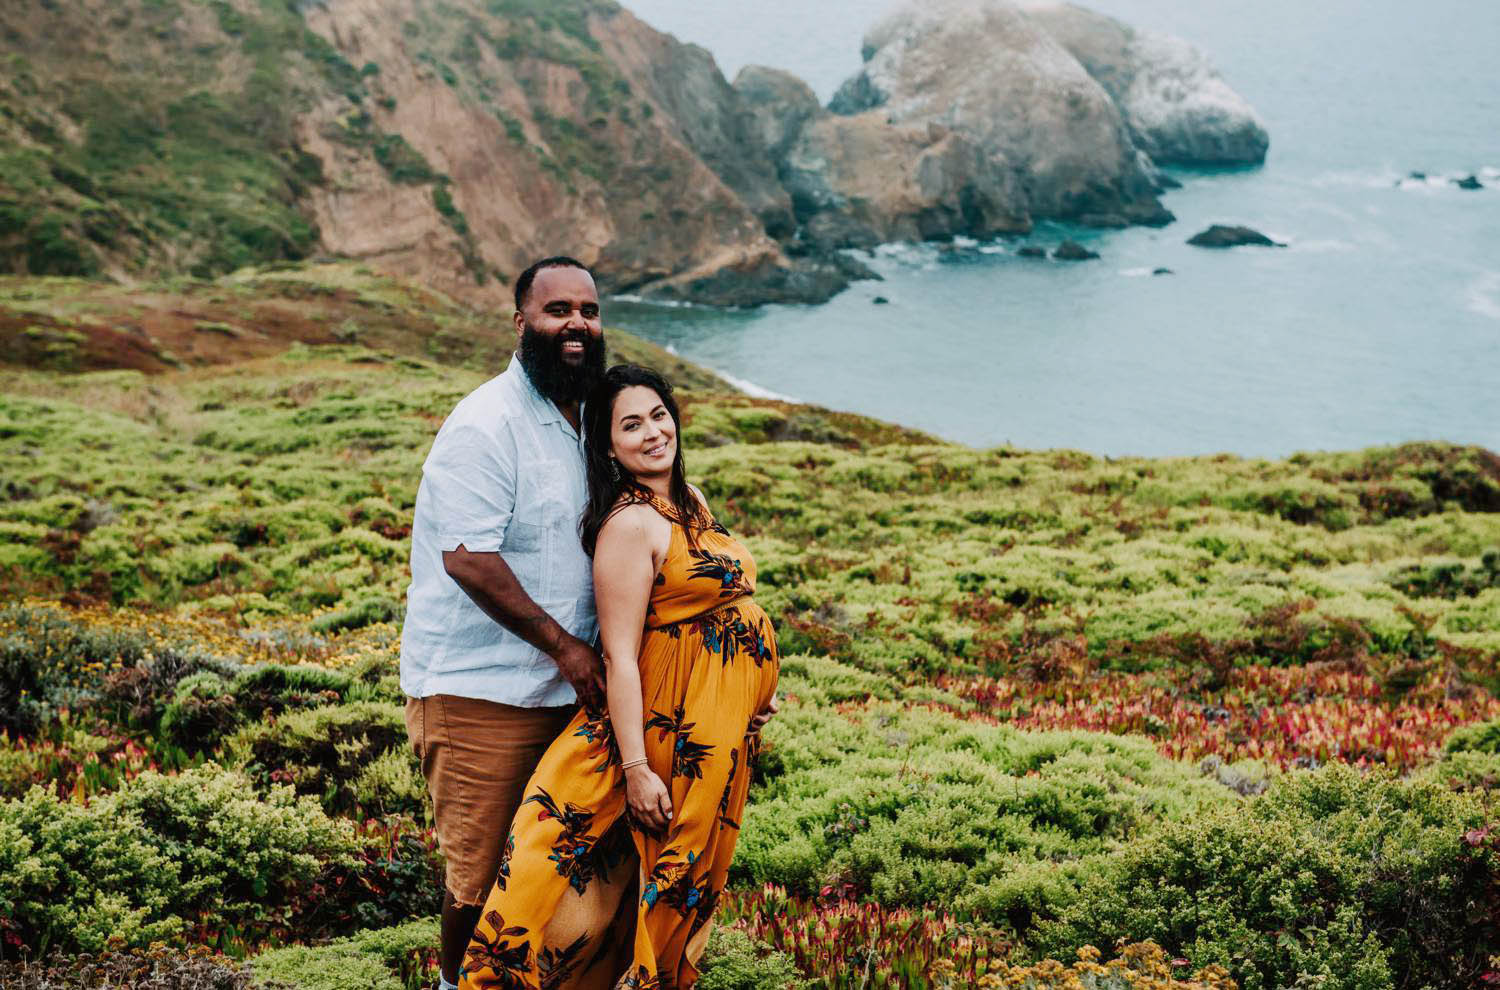 Captured Happiness Photography captures beautiful maternity poses in Hawaii, including this portrait of a man and his pregnant partner standing by the ocean with cliffs behind them.